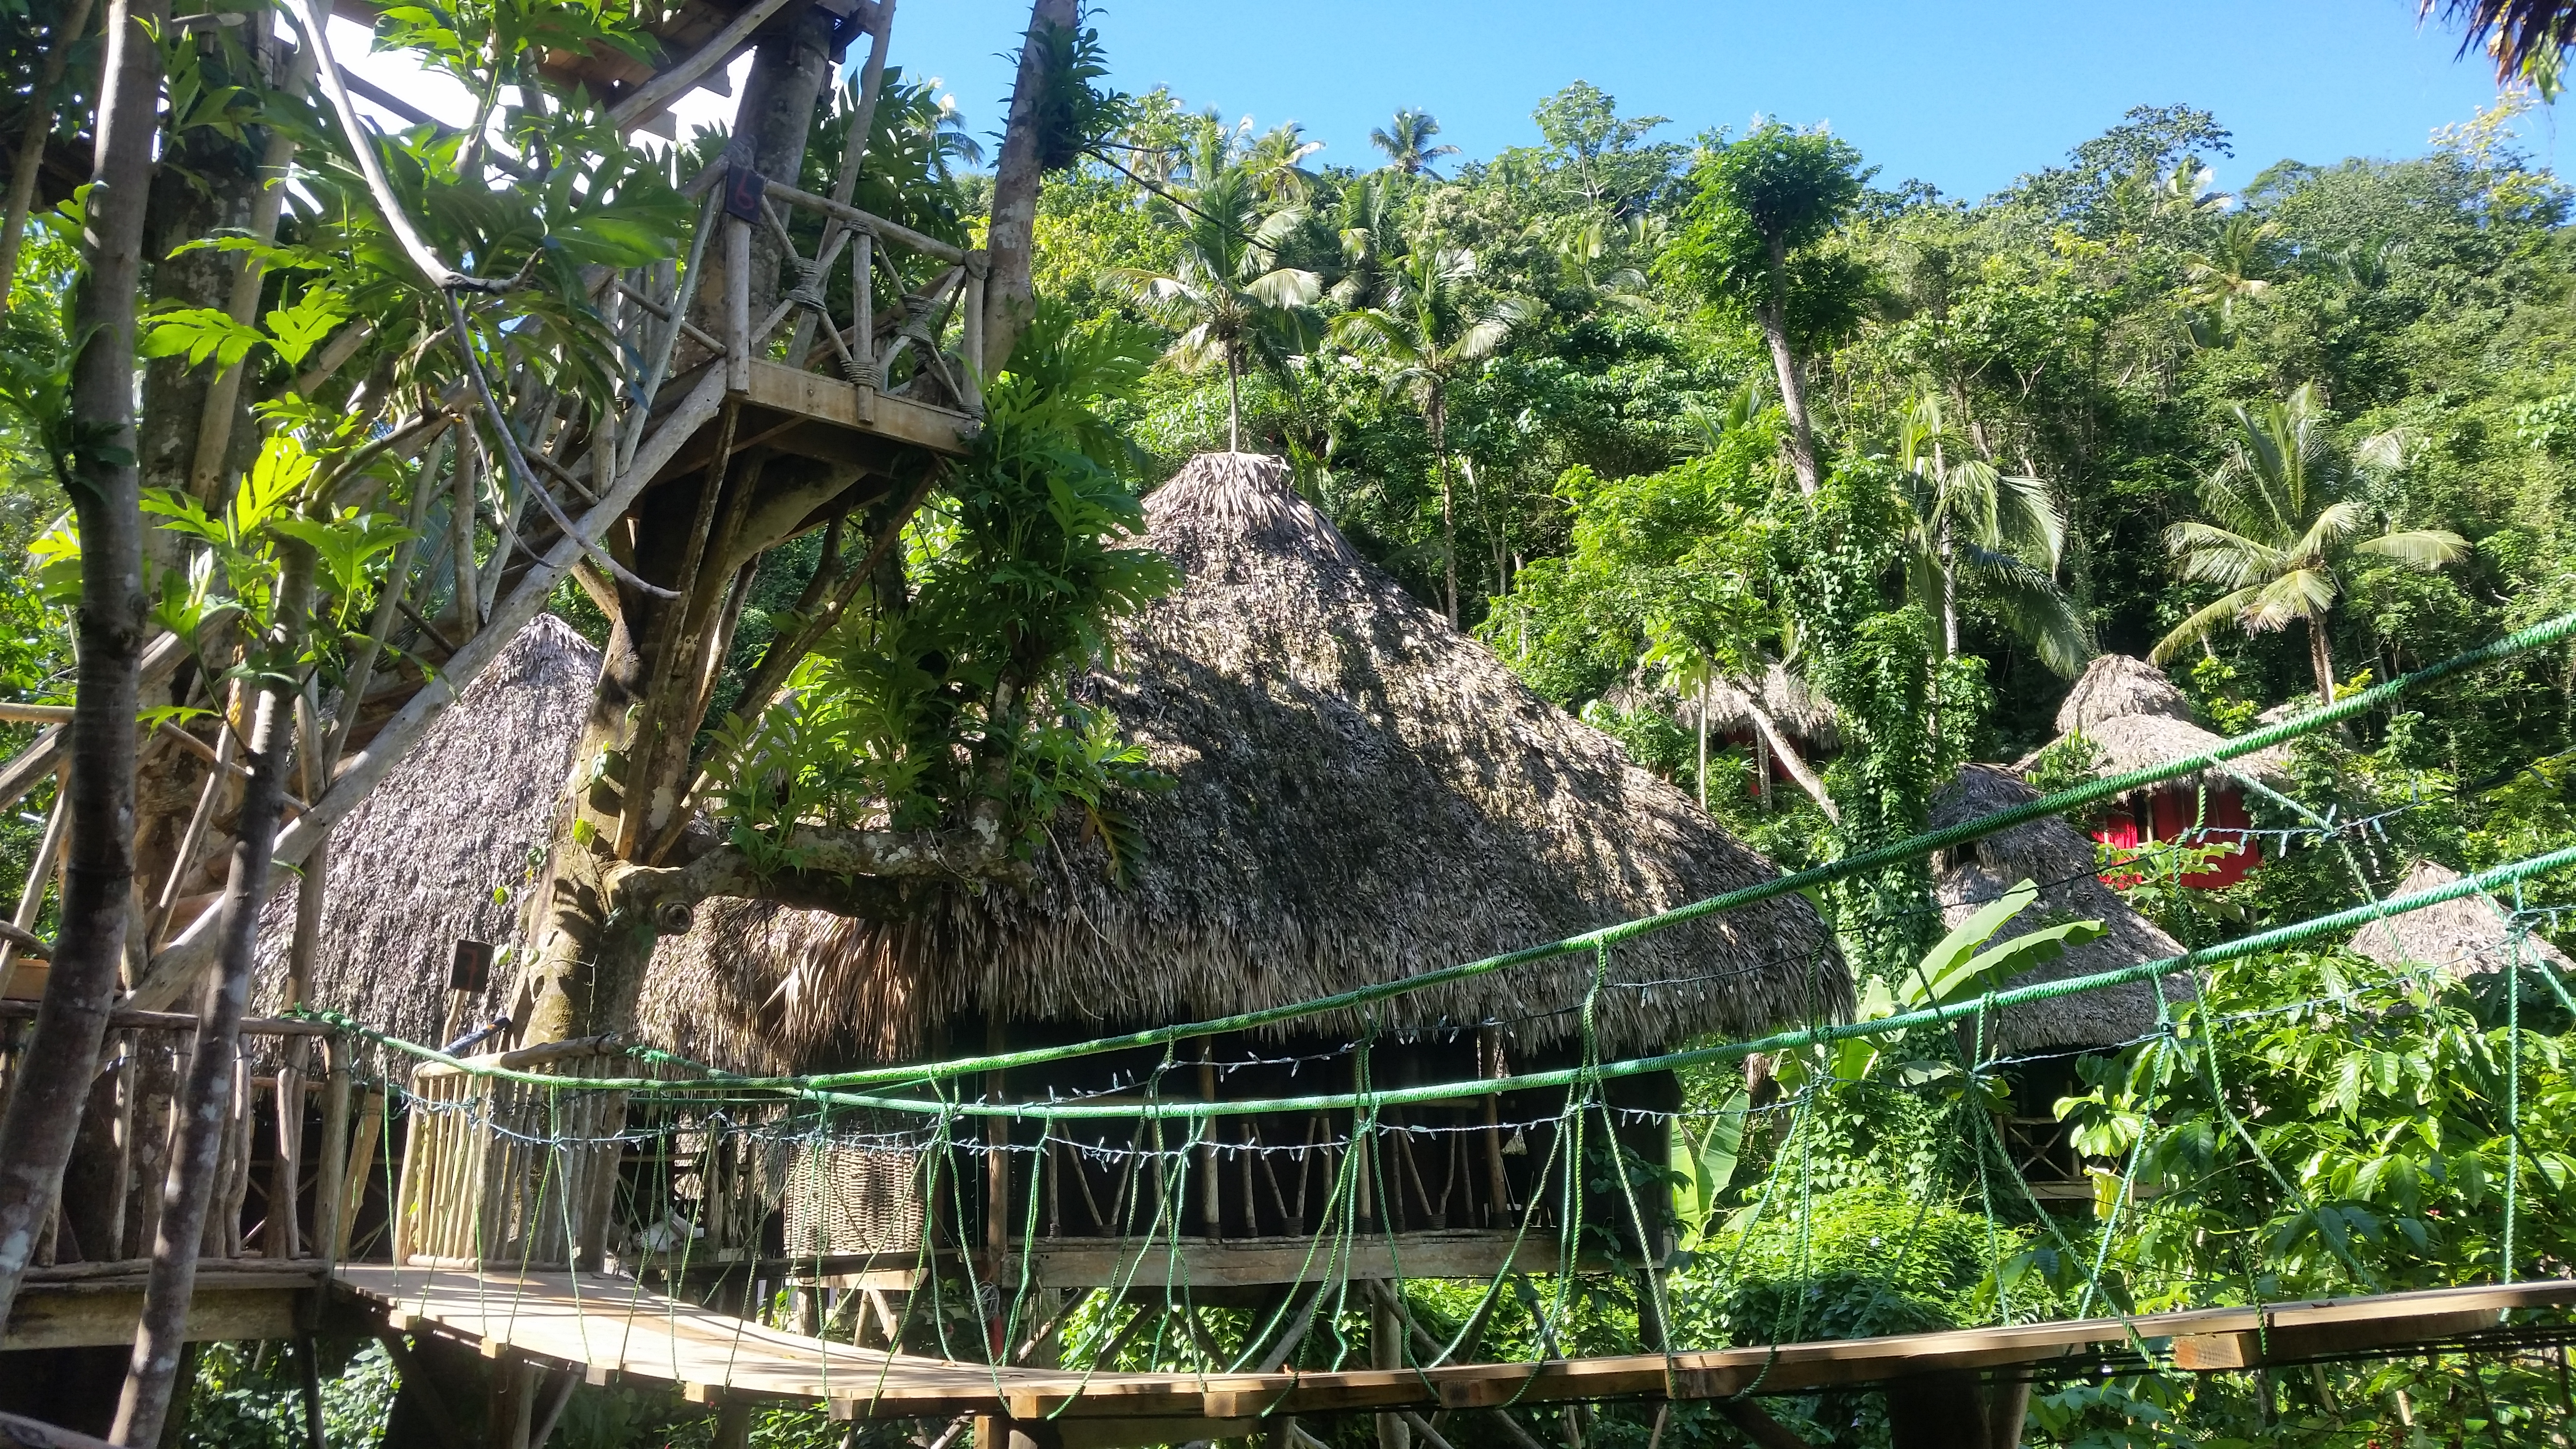 The Dominican Tree House Village